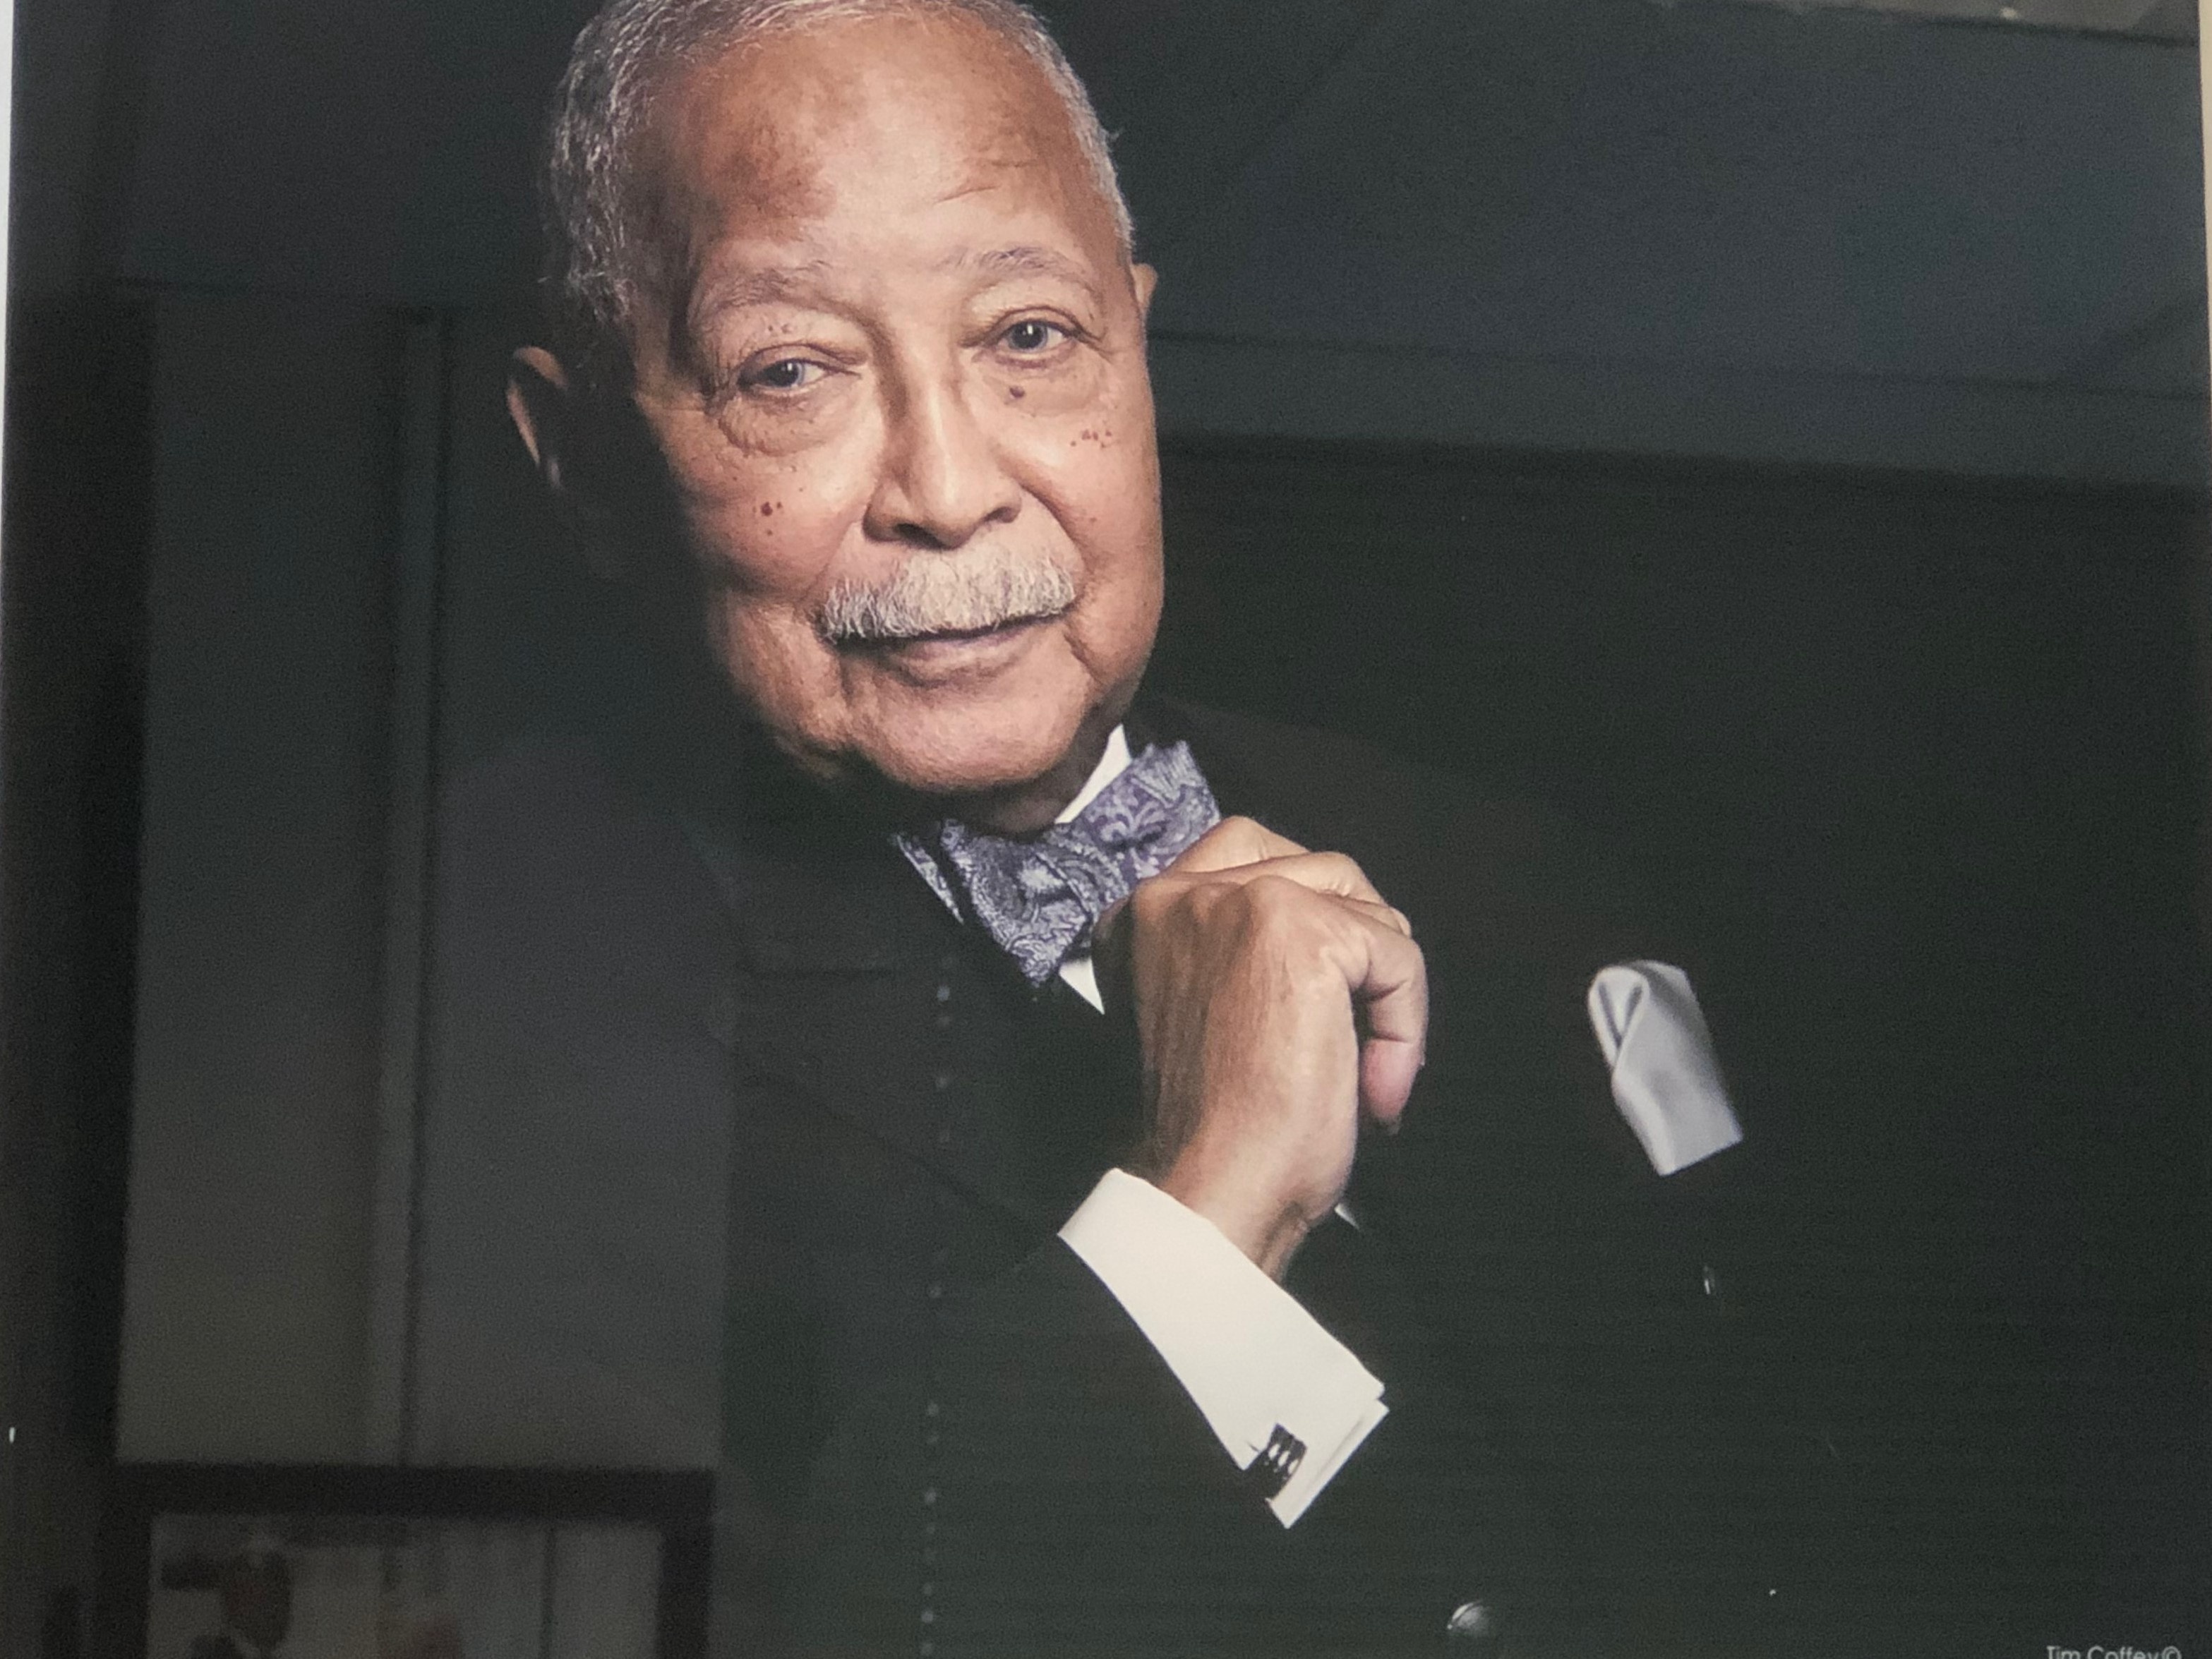 nyc history making mayor david dinkins celebrates 92nd birthday by dominic carter medium nyc history making mayor david dinkins